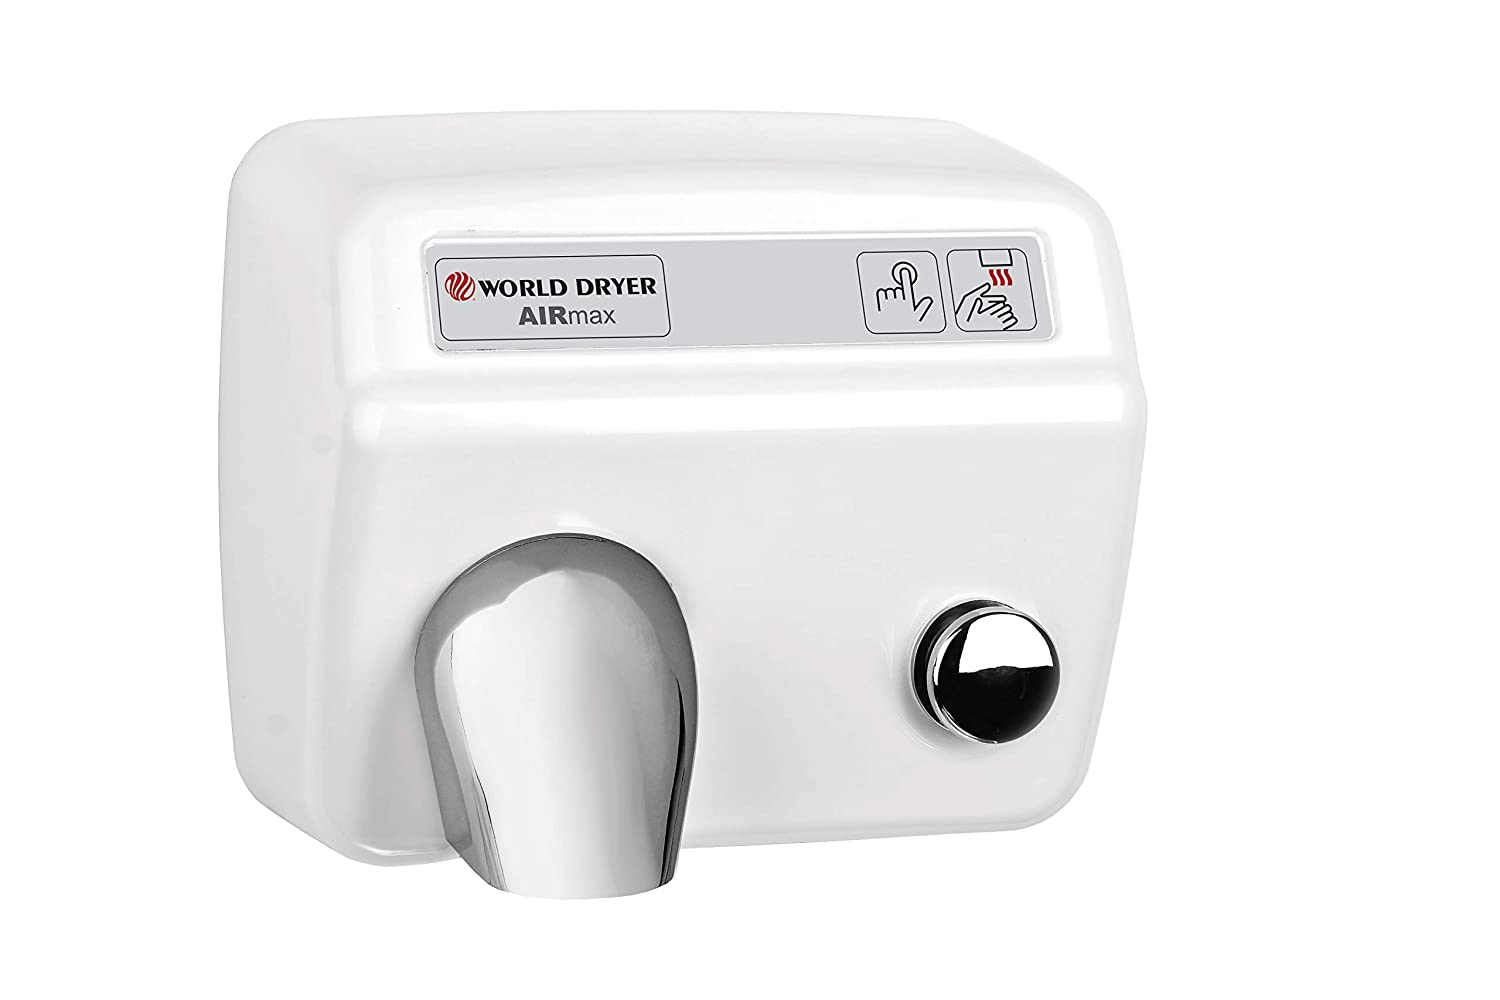 110-120V Cast Iron White World Dryer XM5-974 AirMax High Speed and Heavy Duty Hand Dryers Automatic